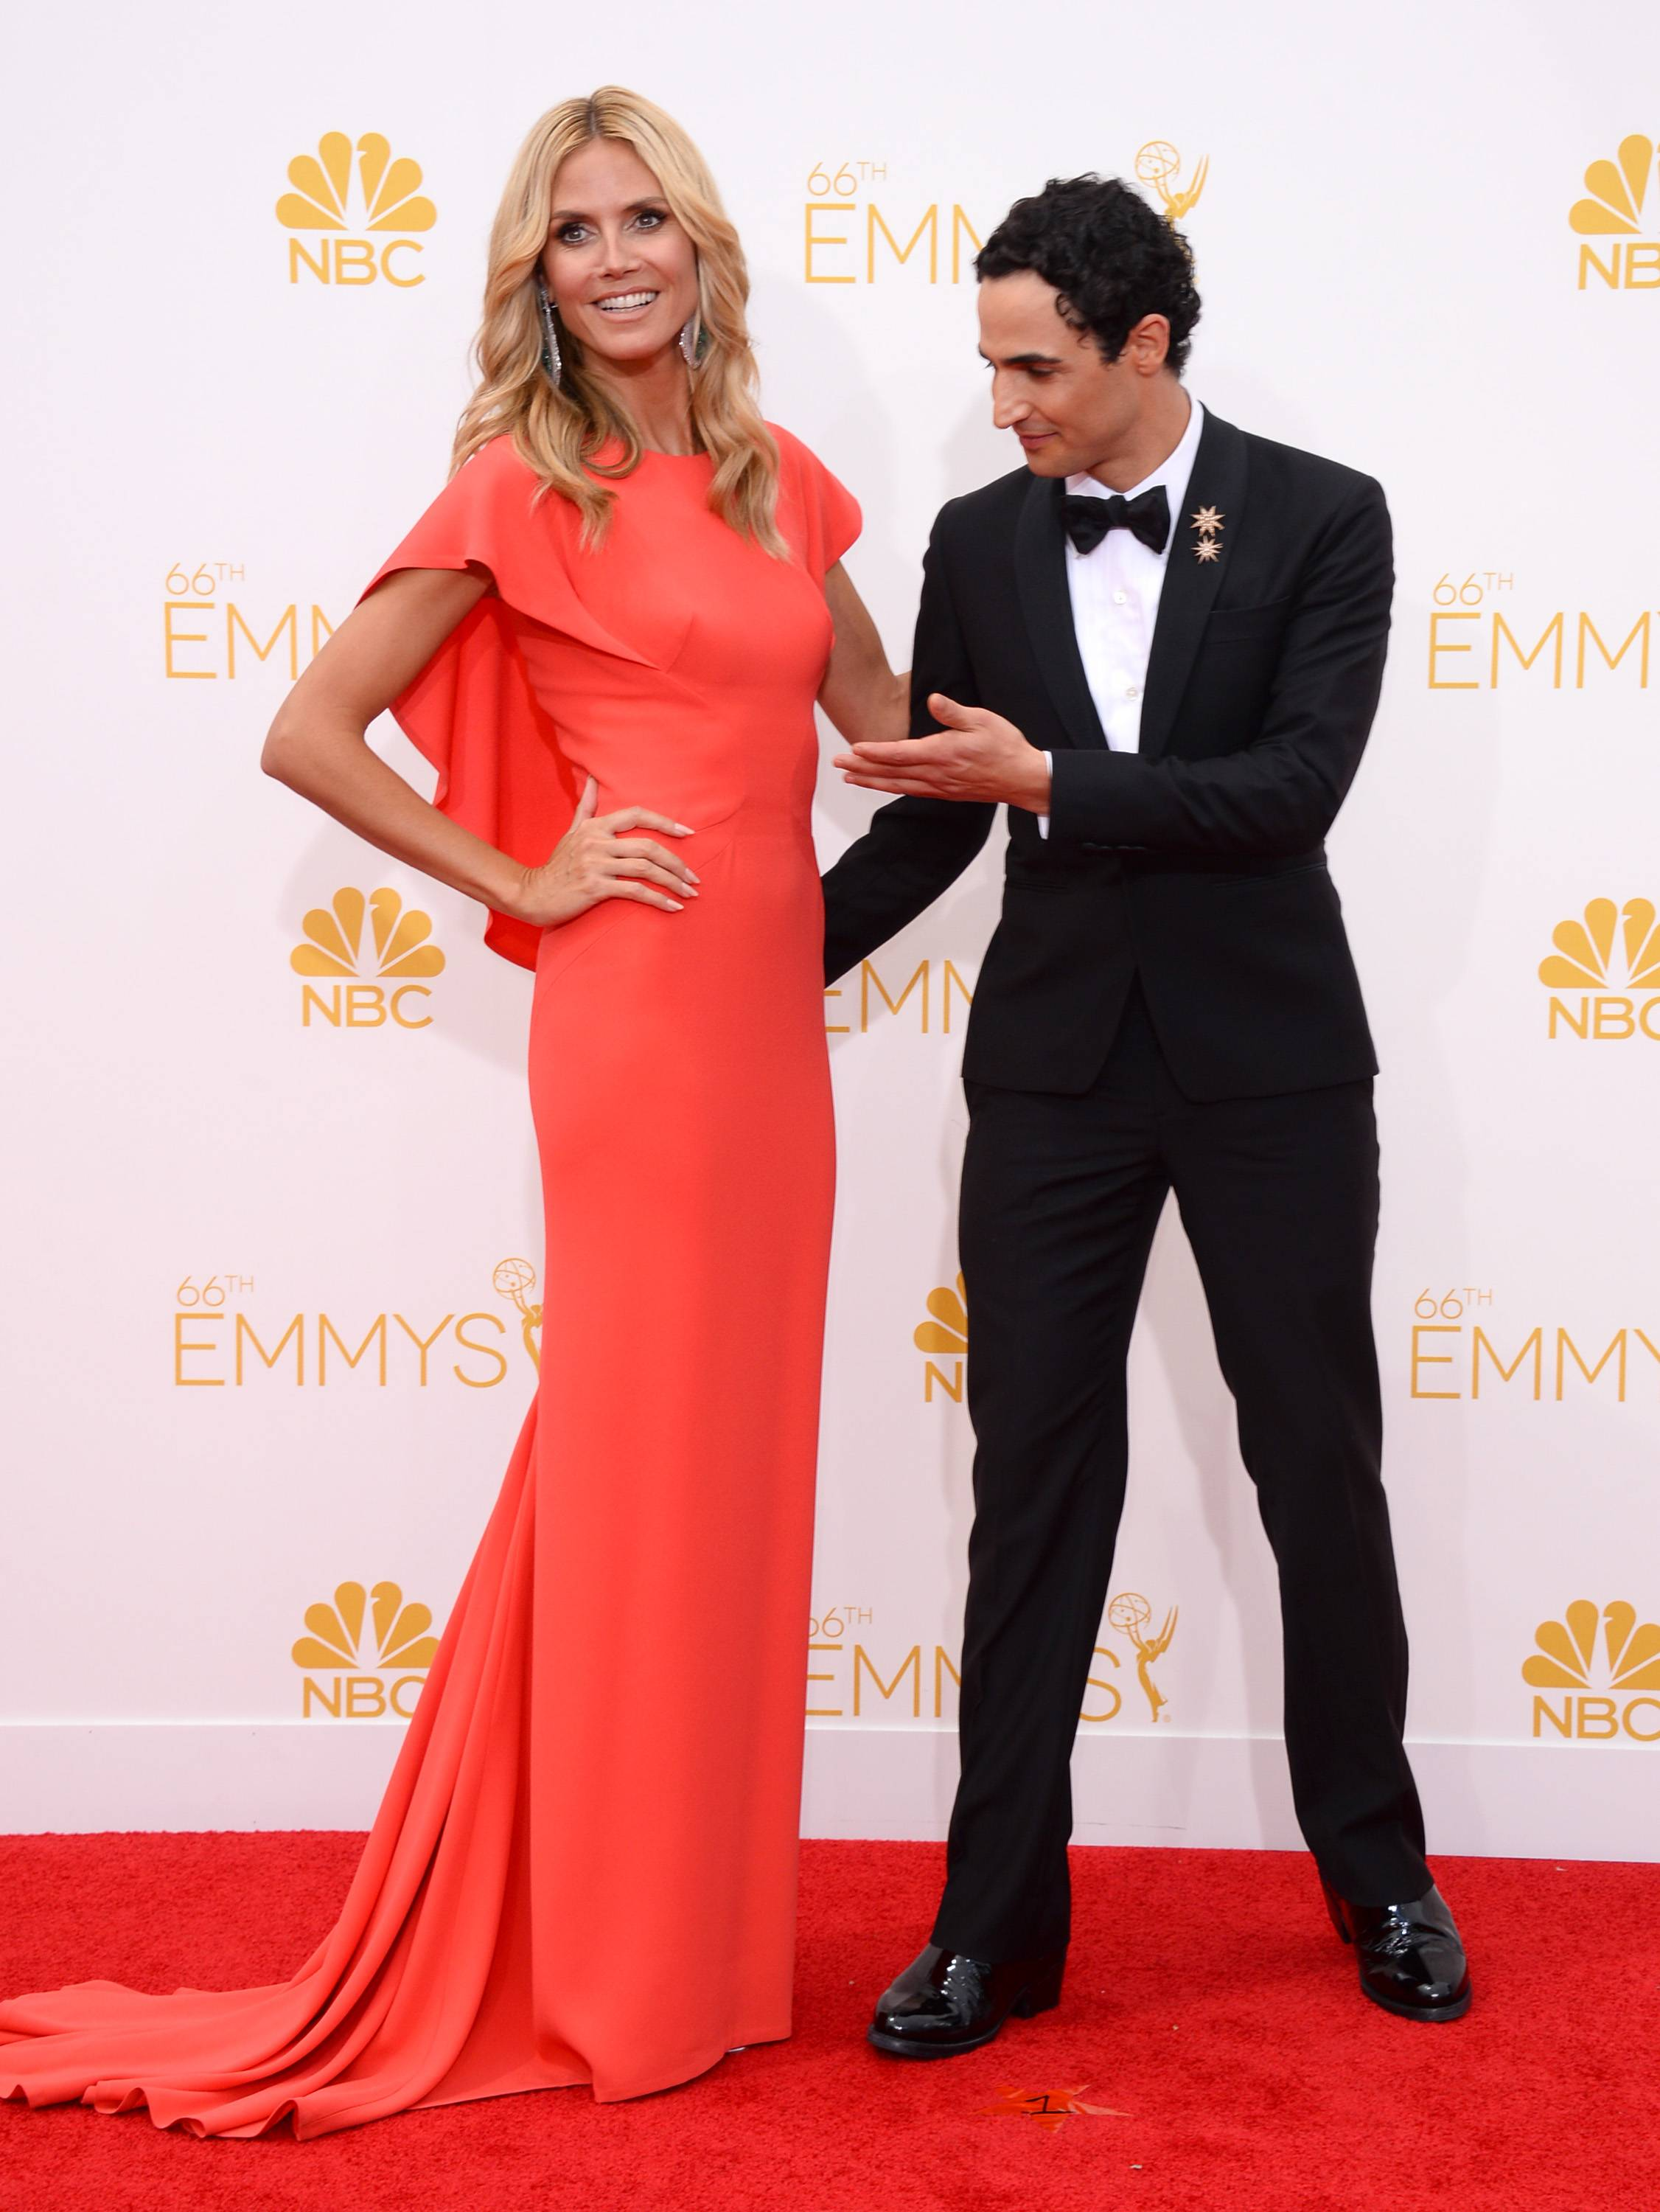 Heidi Klum, left, and Zac Posen arrive at the 66th Annual Primetime Emmy Awards.